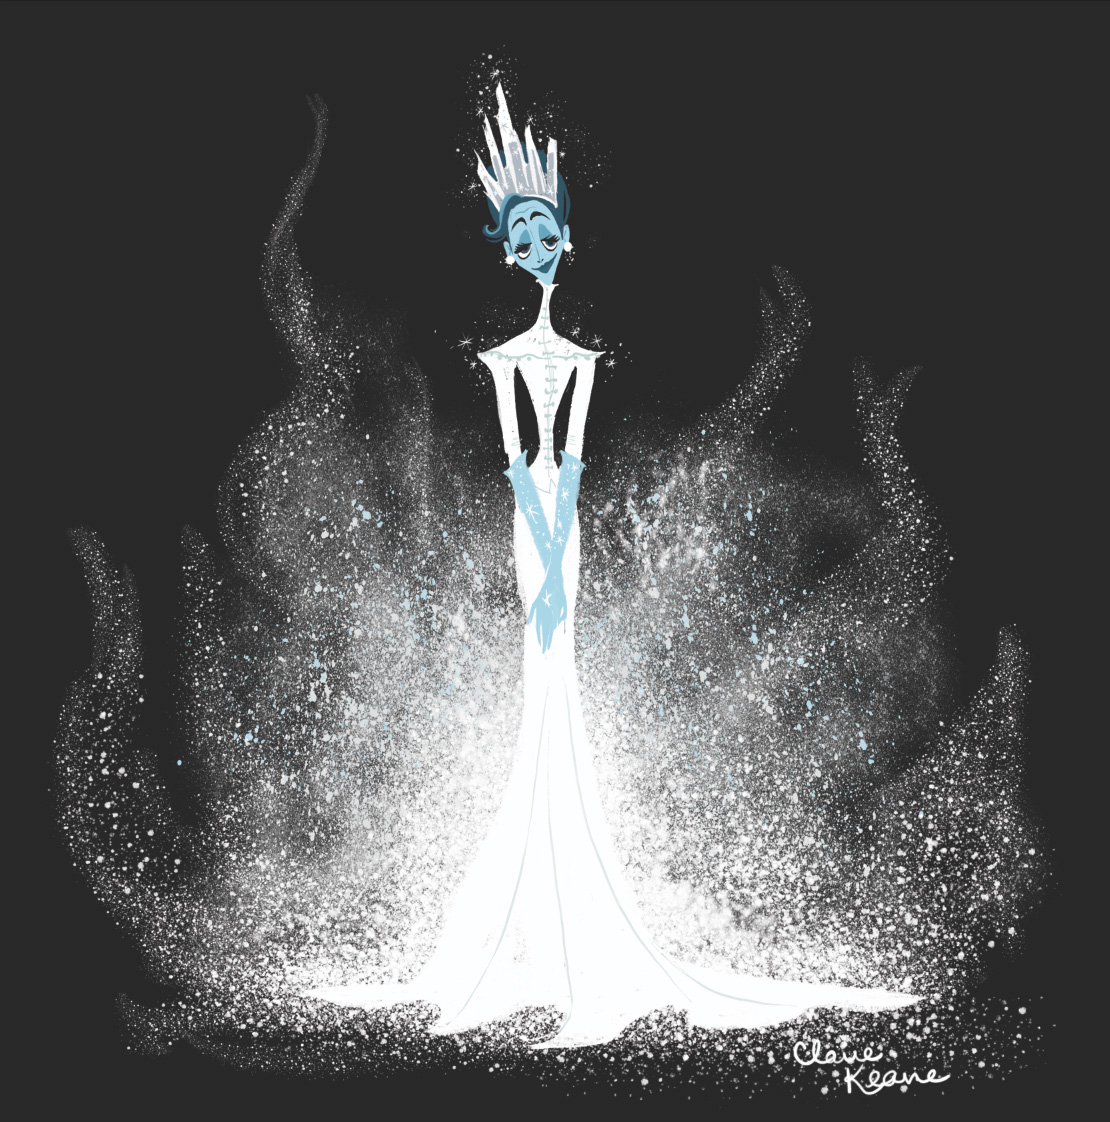 """SNOW QUEEN BASED ON """"AUNTIE MAME"""" //VISUAL DEVELOPMENT FOR FROZEN"""